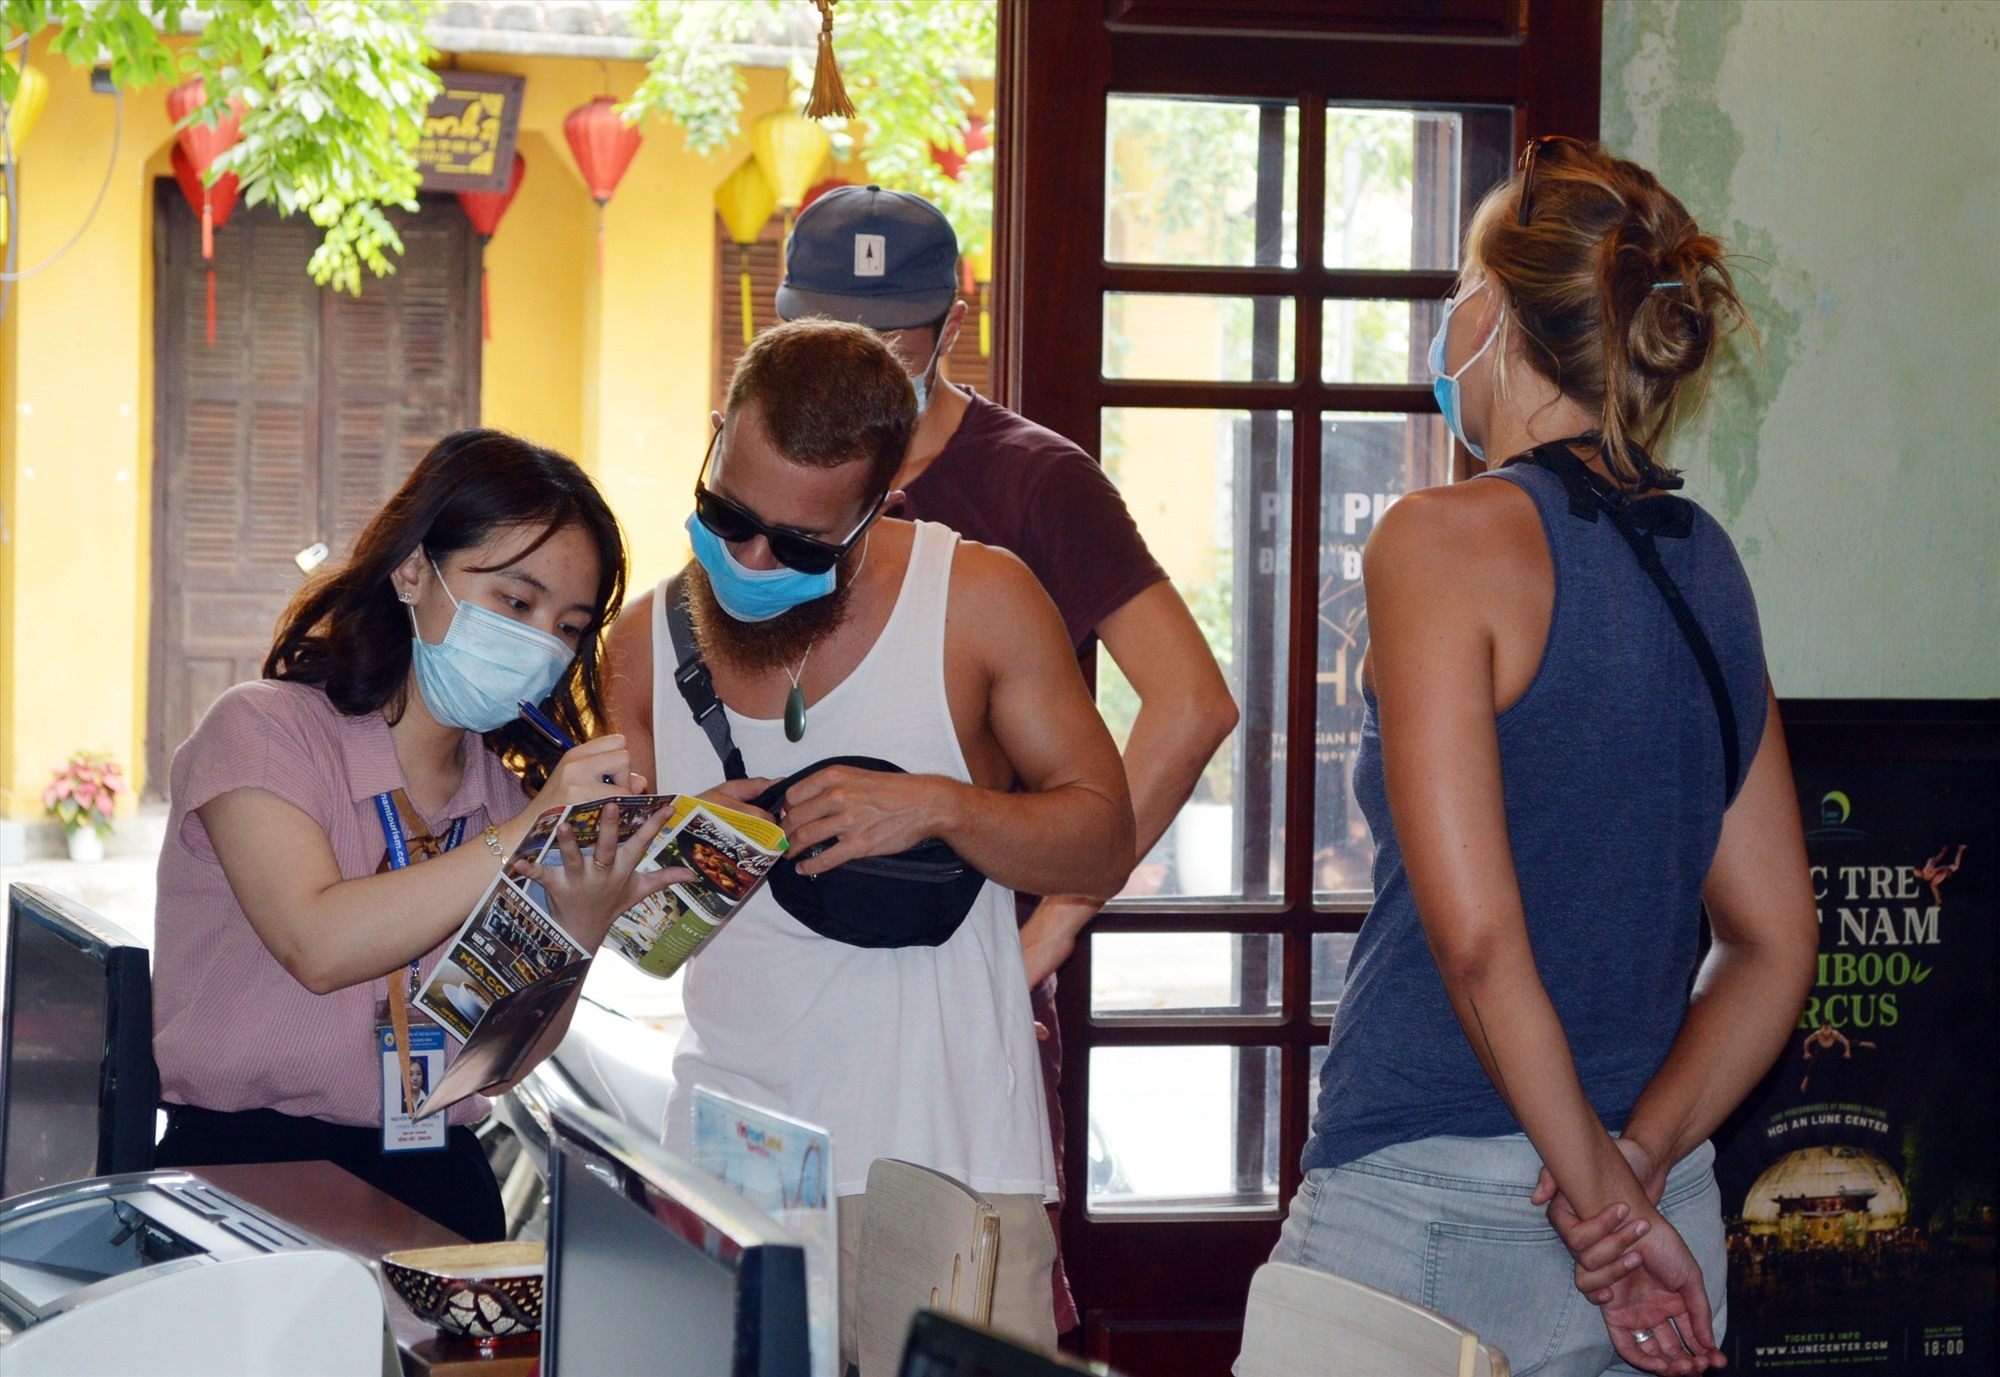 Foreign tourists learn about Quang Nam safe tourism information in the context of the Covid-19 pandemic.